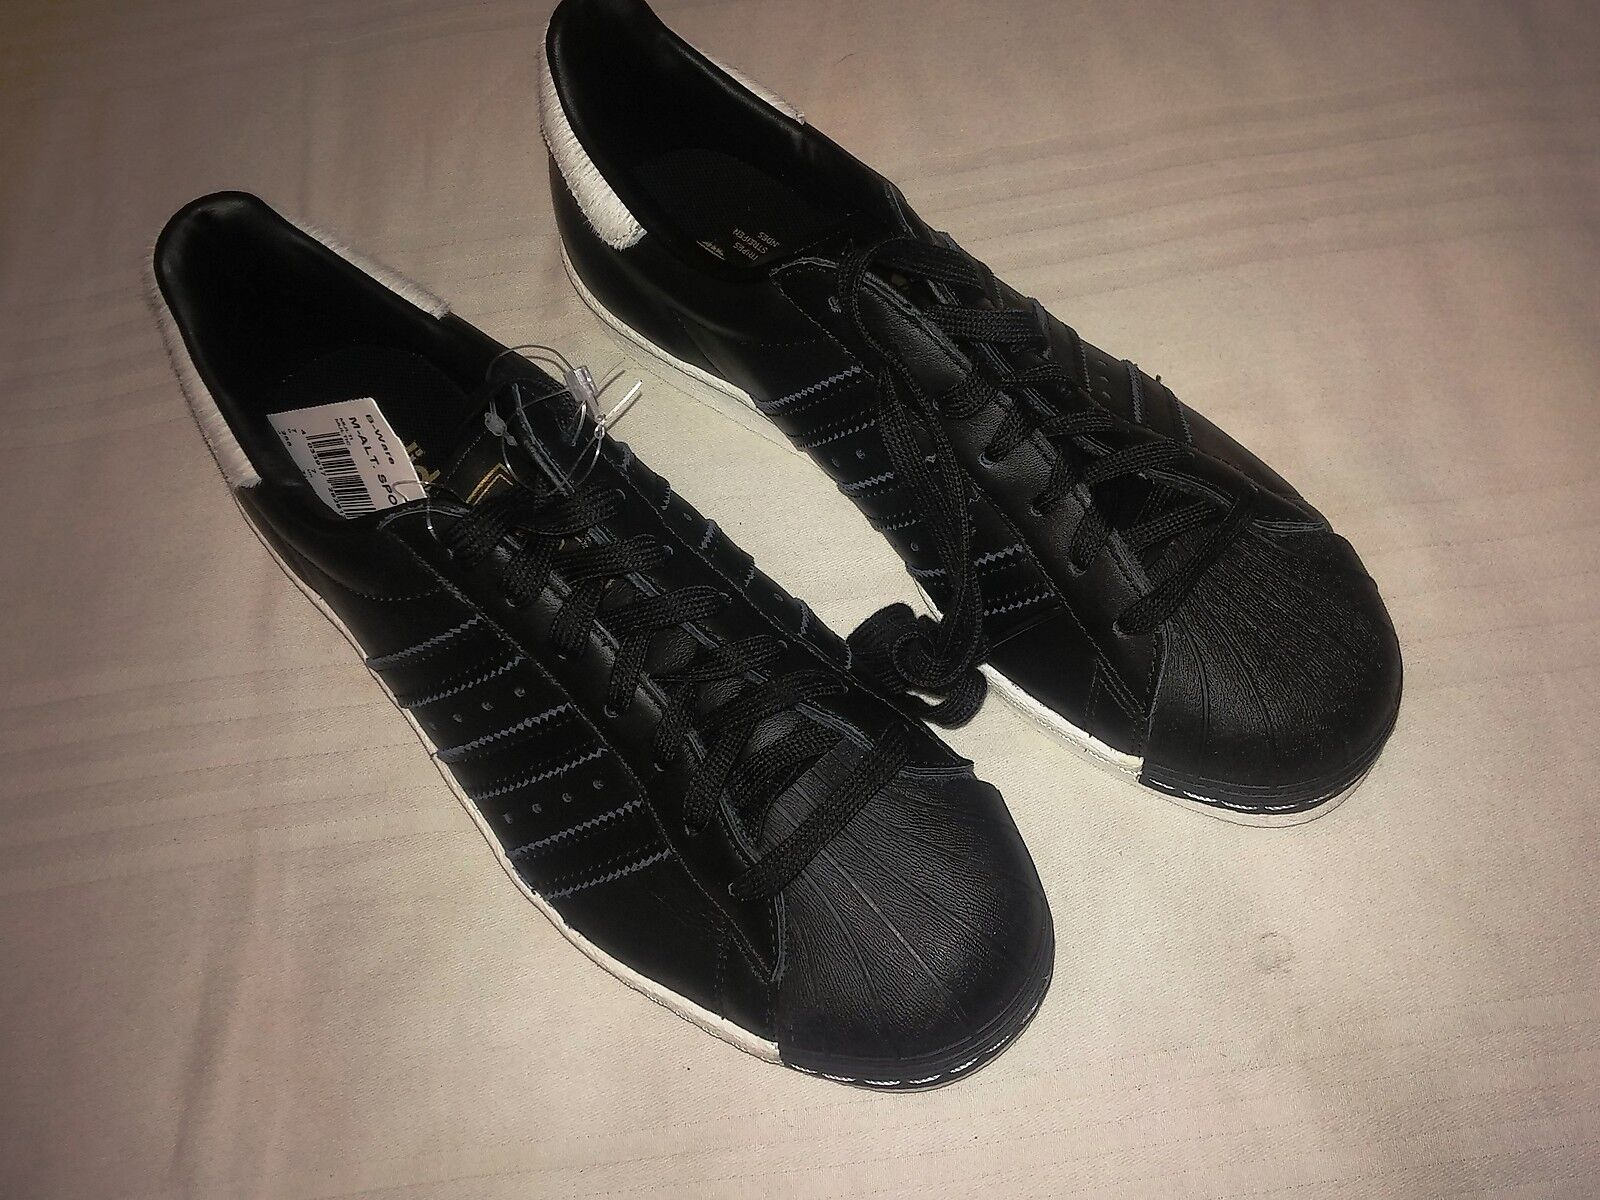 ADIDAS ORIGINALS SUPERSTAR 80s BLACK Weiß US PONY Sz 40-2/3 - US Weiß 7,5 Schuhe schuhe 8f1d10